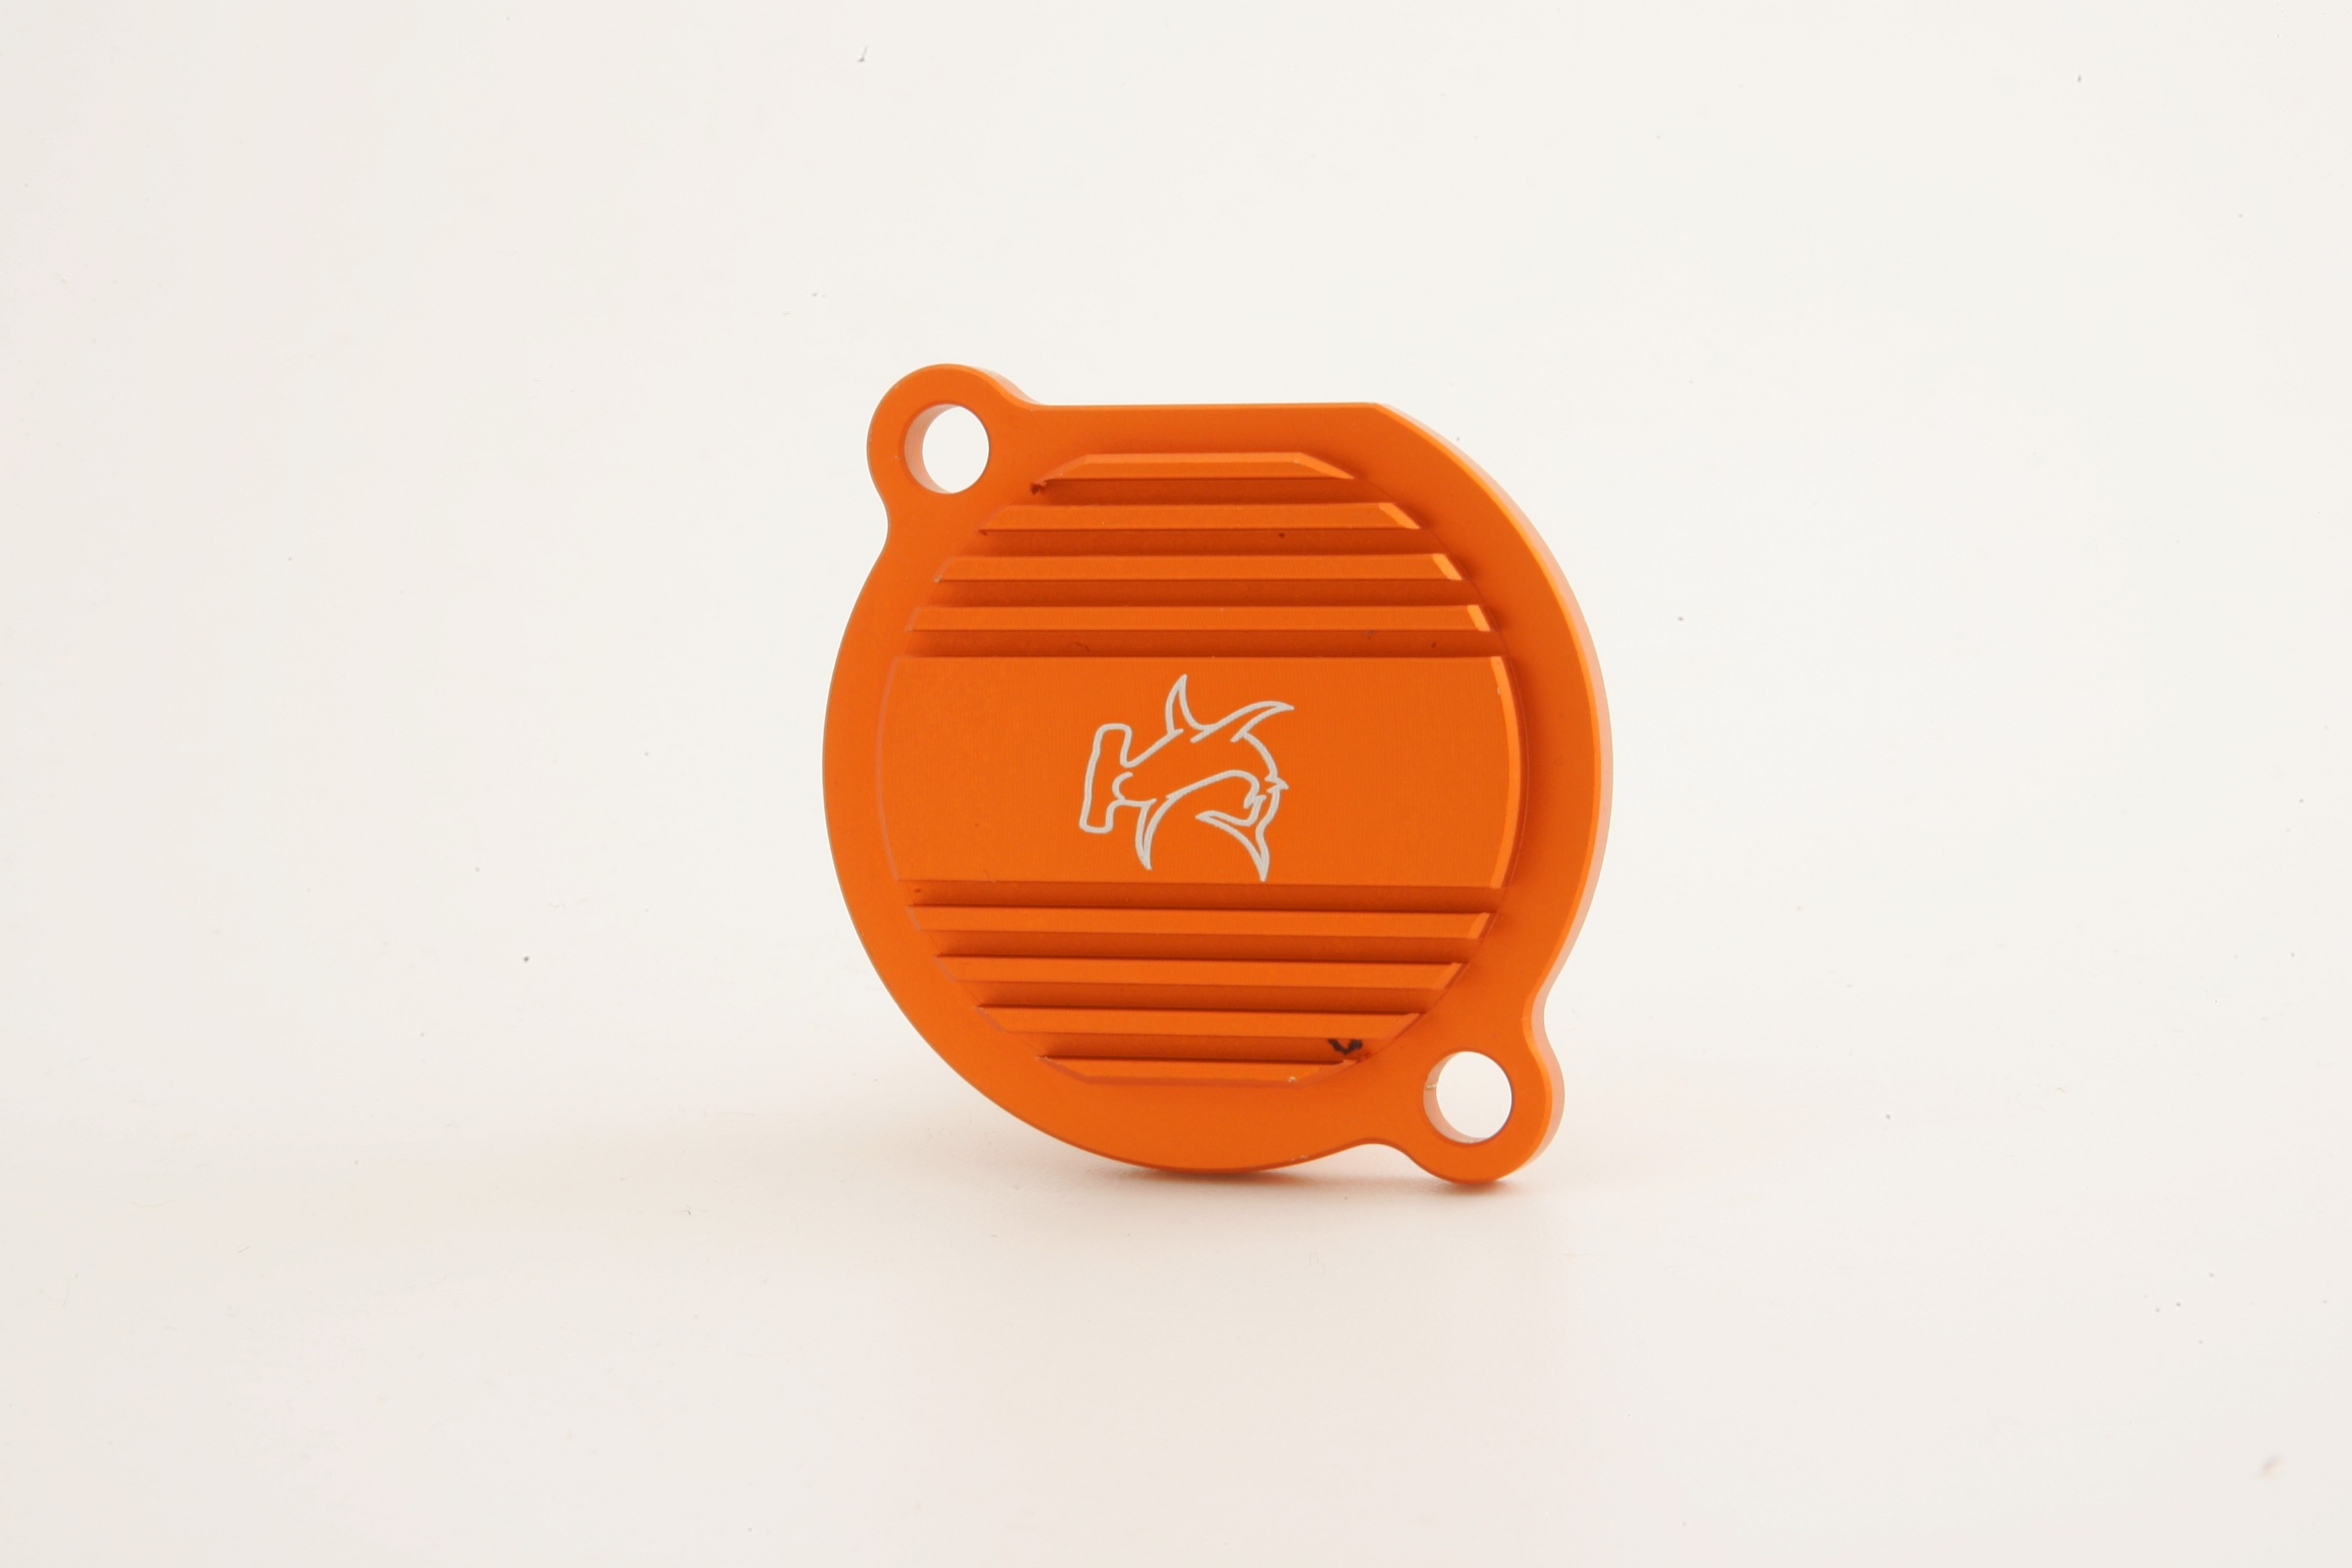 KTM/Husqvarna Type 2 Oil Filter Cover